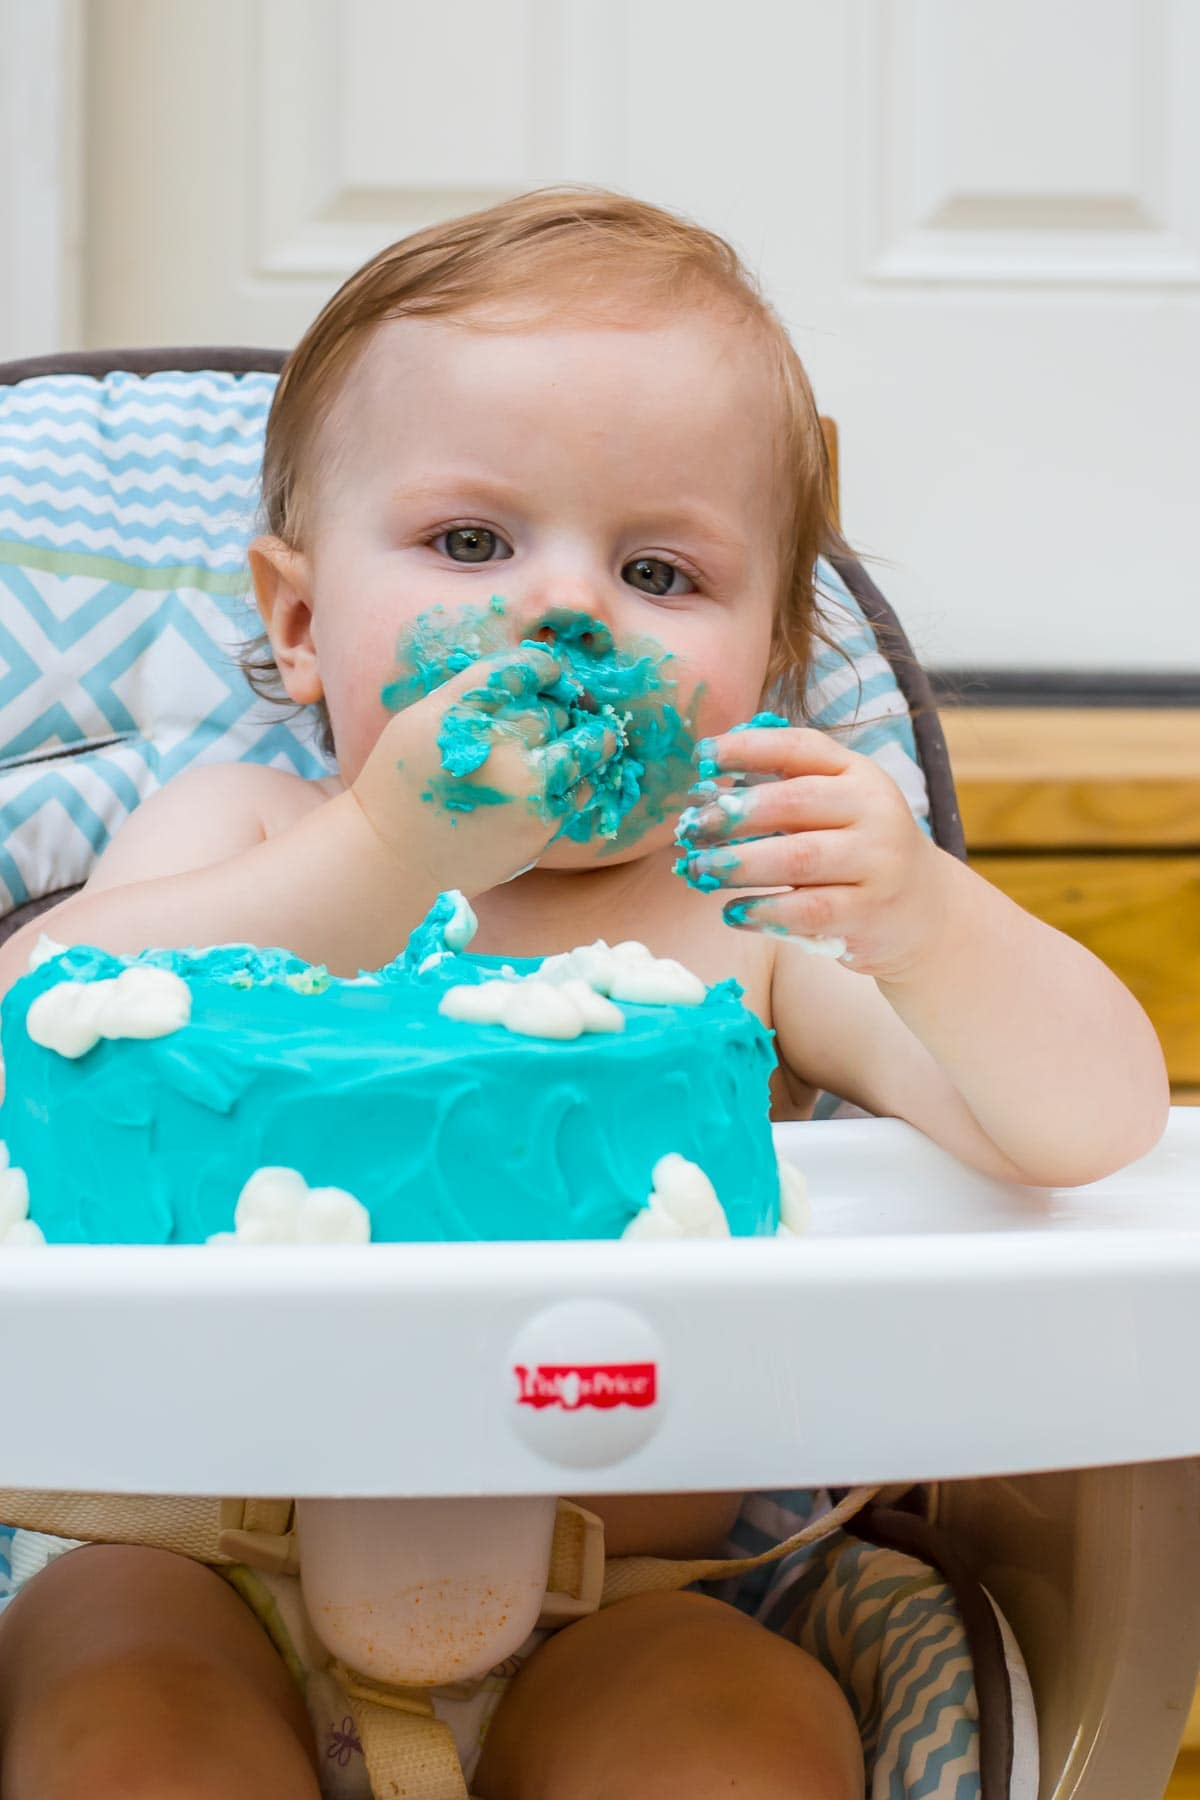 Our little guy loved the cloud cake we made for his airplane themed birthday party!